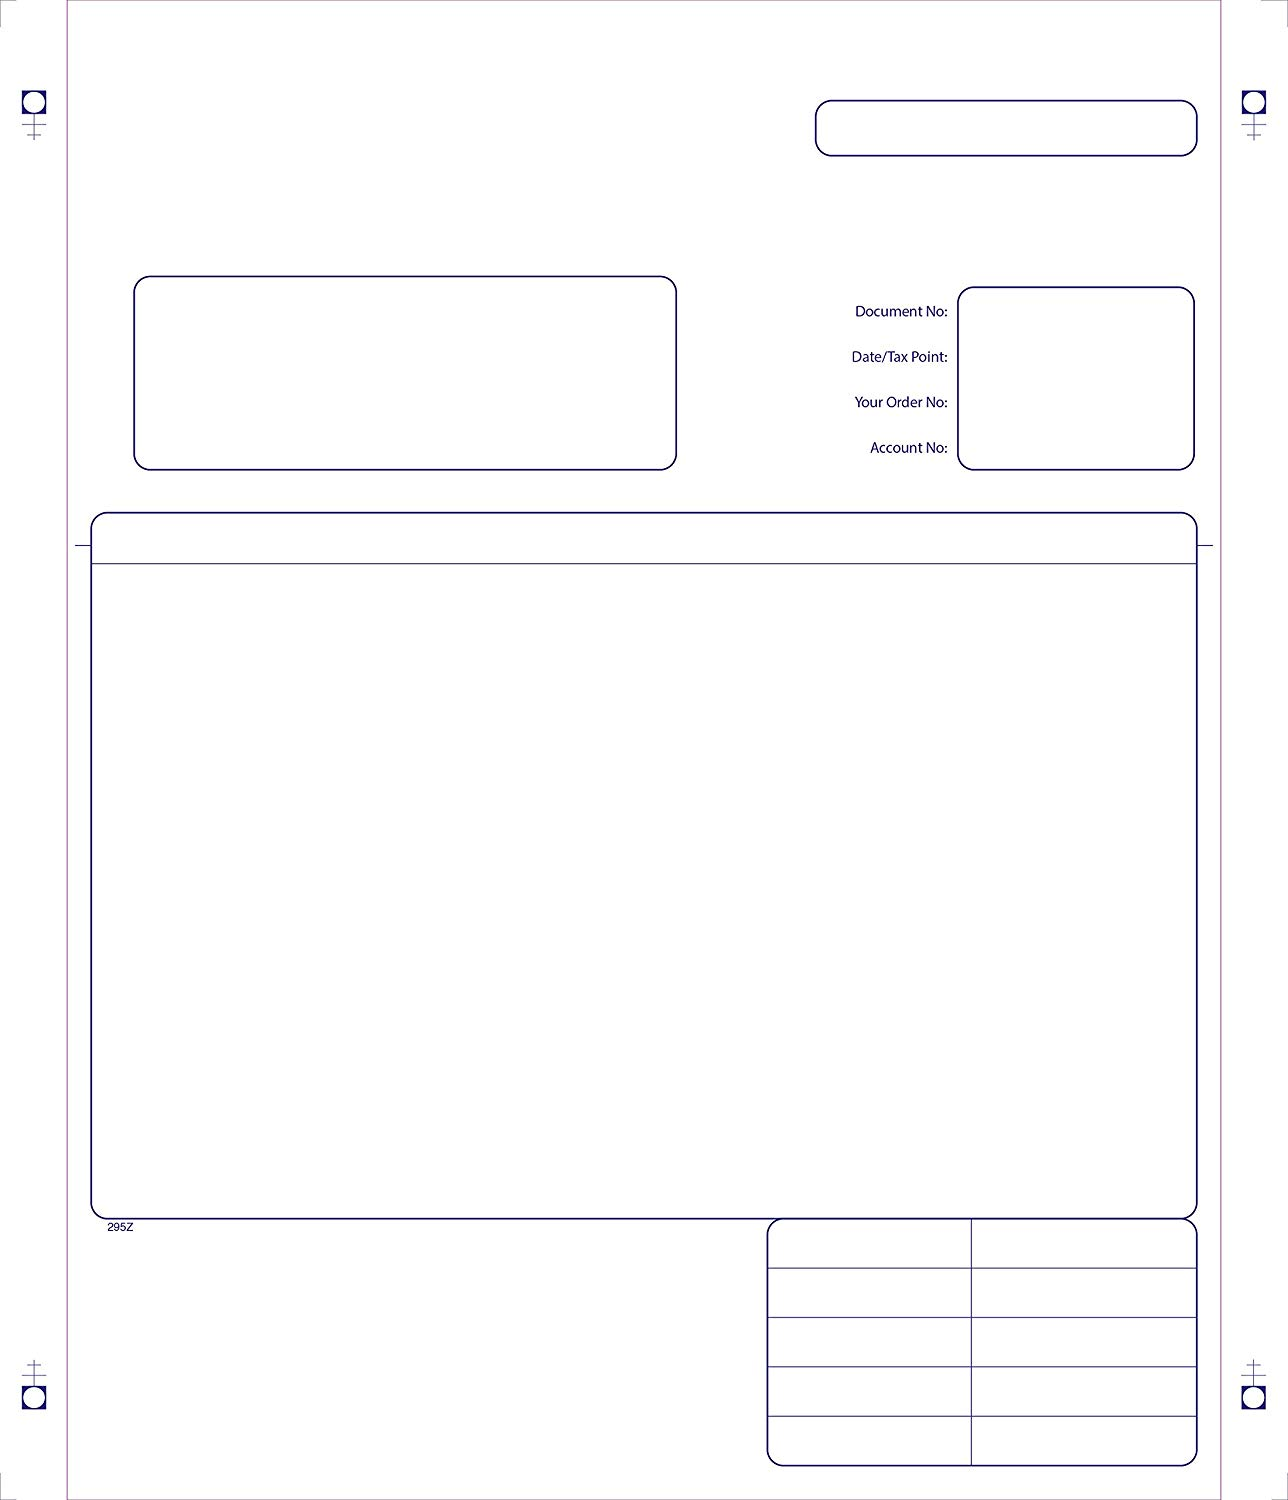 Sage 210 x 297 mm Compatible Business Forms, Invoice Forms, 2 Part, Continuous, Box of 1000